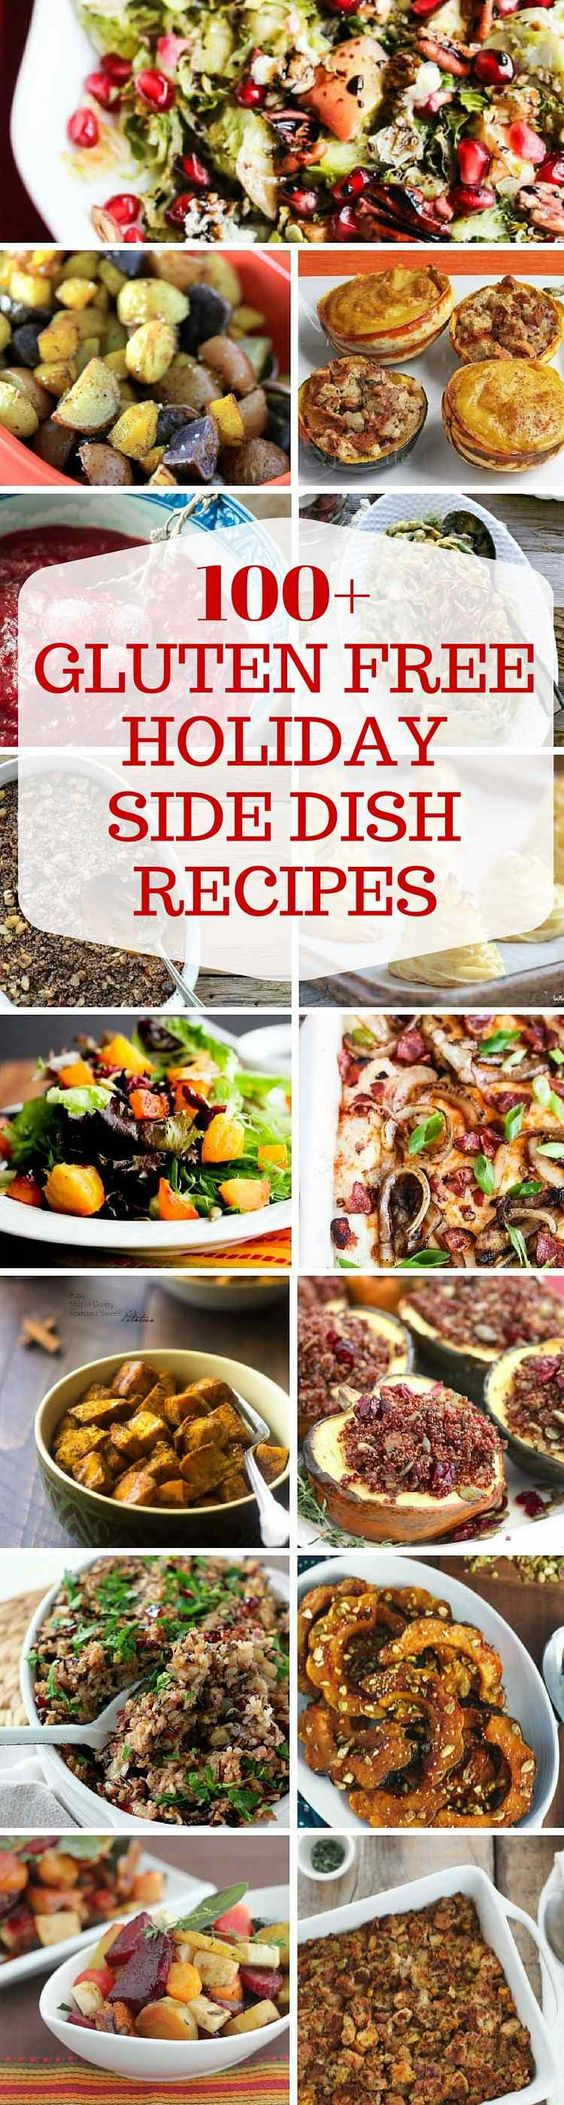 100+ GLUTEN FREE HOLIDAY SIDE DISH RECIPES - Tons of gluten-free holiday side dish recipes, including stuffing, sweet potato casseroles, green bean casserole, gratins, salads and gravy #fcpinpartners